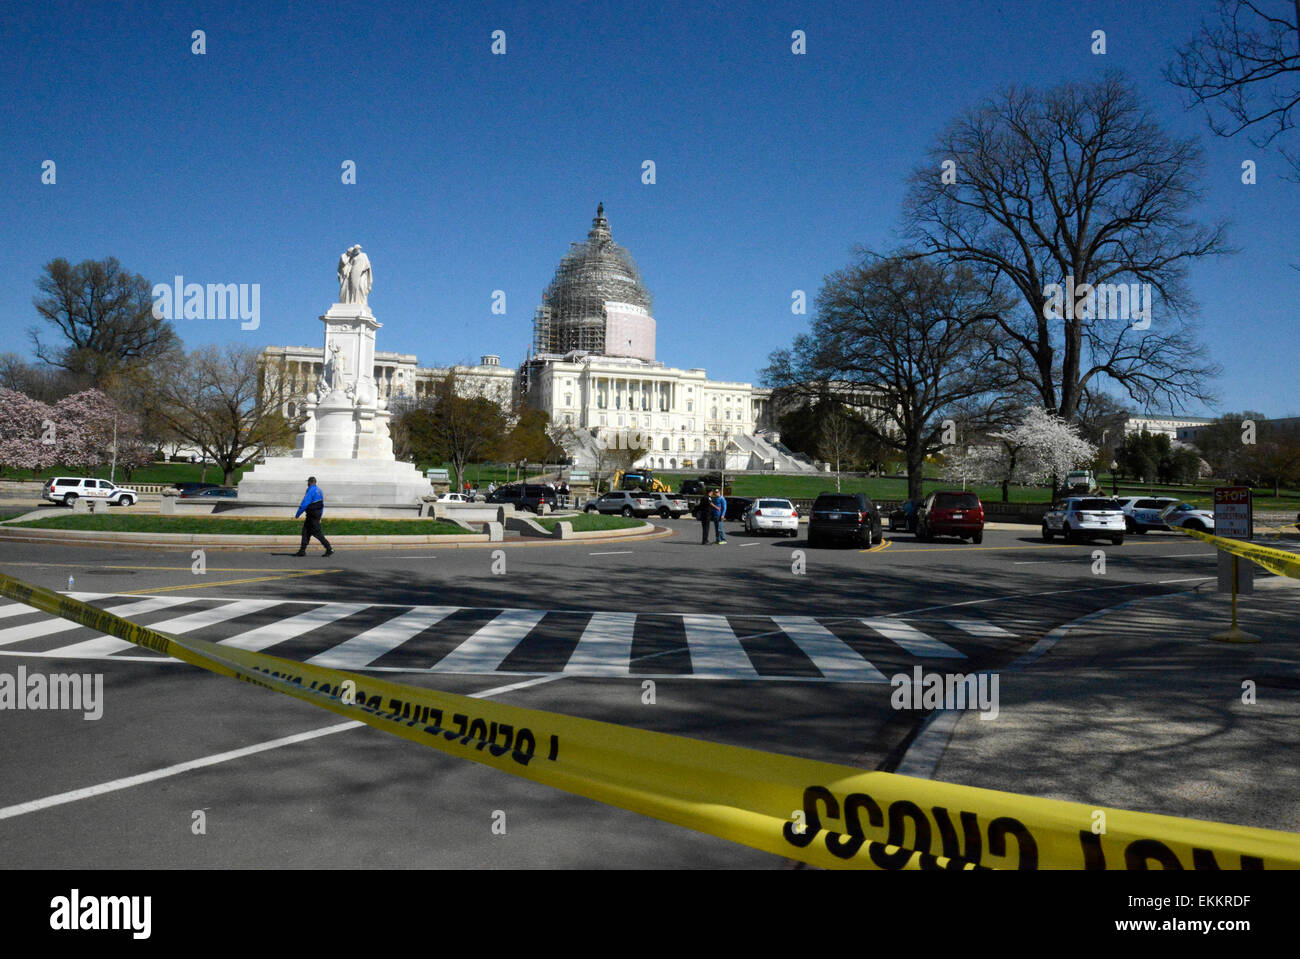 Washington, DC, USA. 11th Apr, 2015. Policemen guard on Capitol Hill after a shooting in Washington, DC, the United - Stock Image